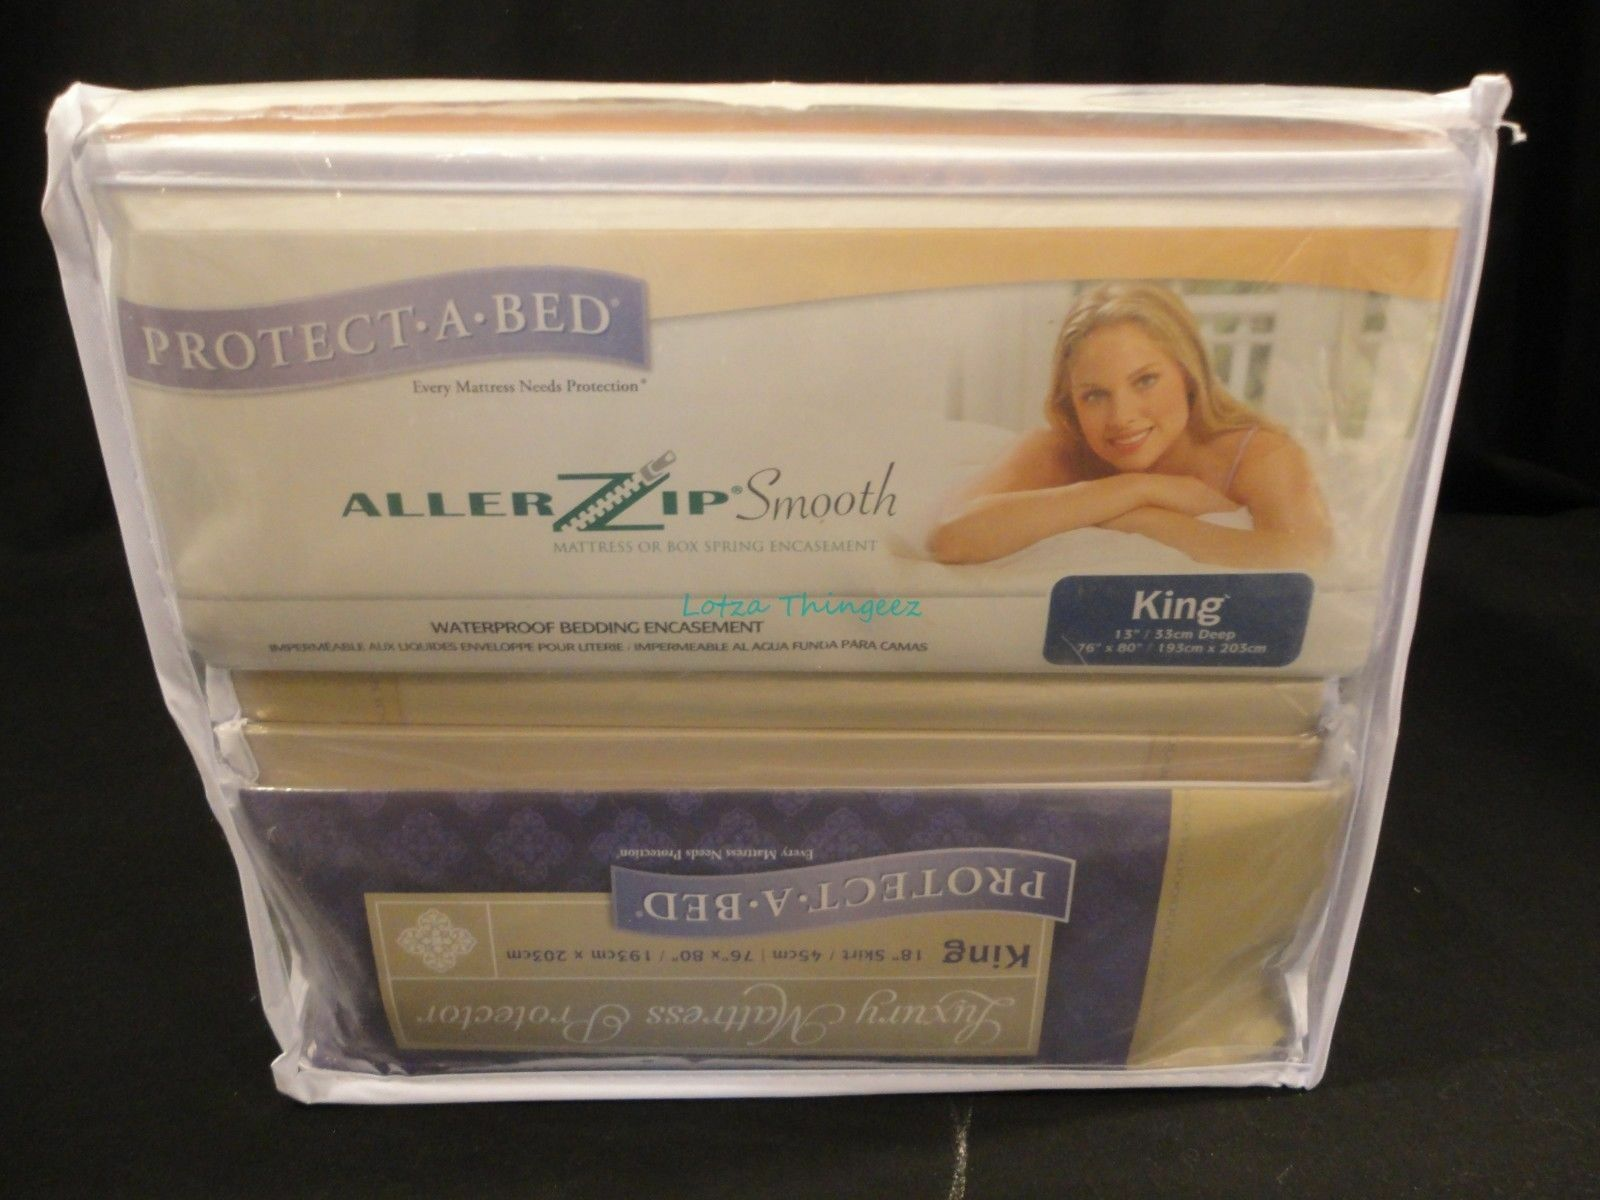 New Tencel Bed Protection Kit 4Pc Waterproof Allergy Keep Bed Bugs Out KING Size